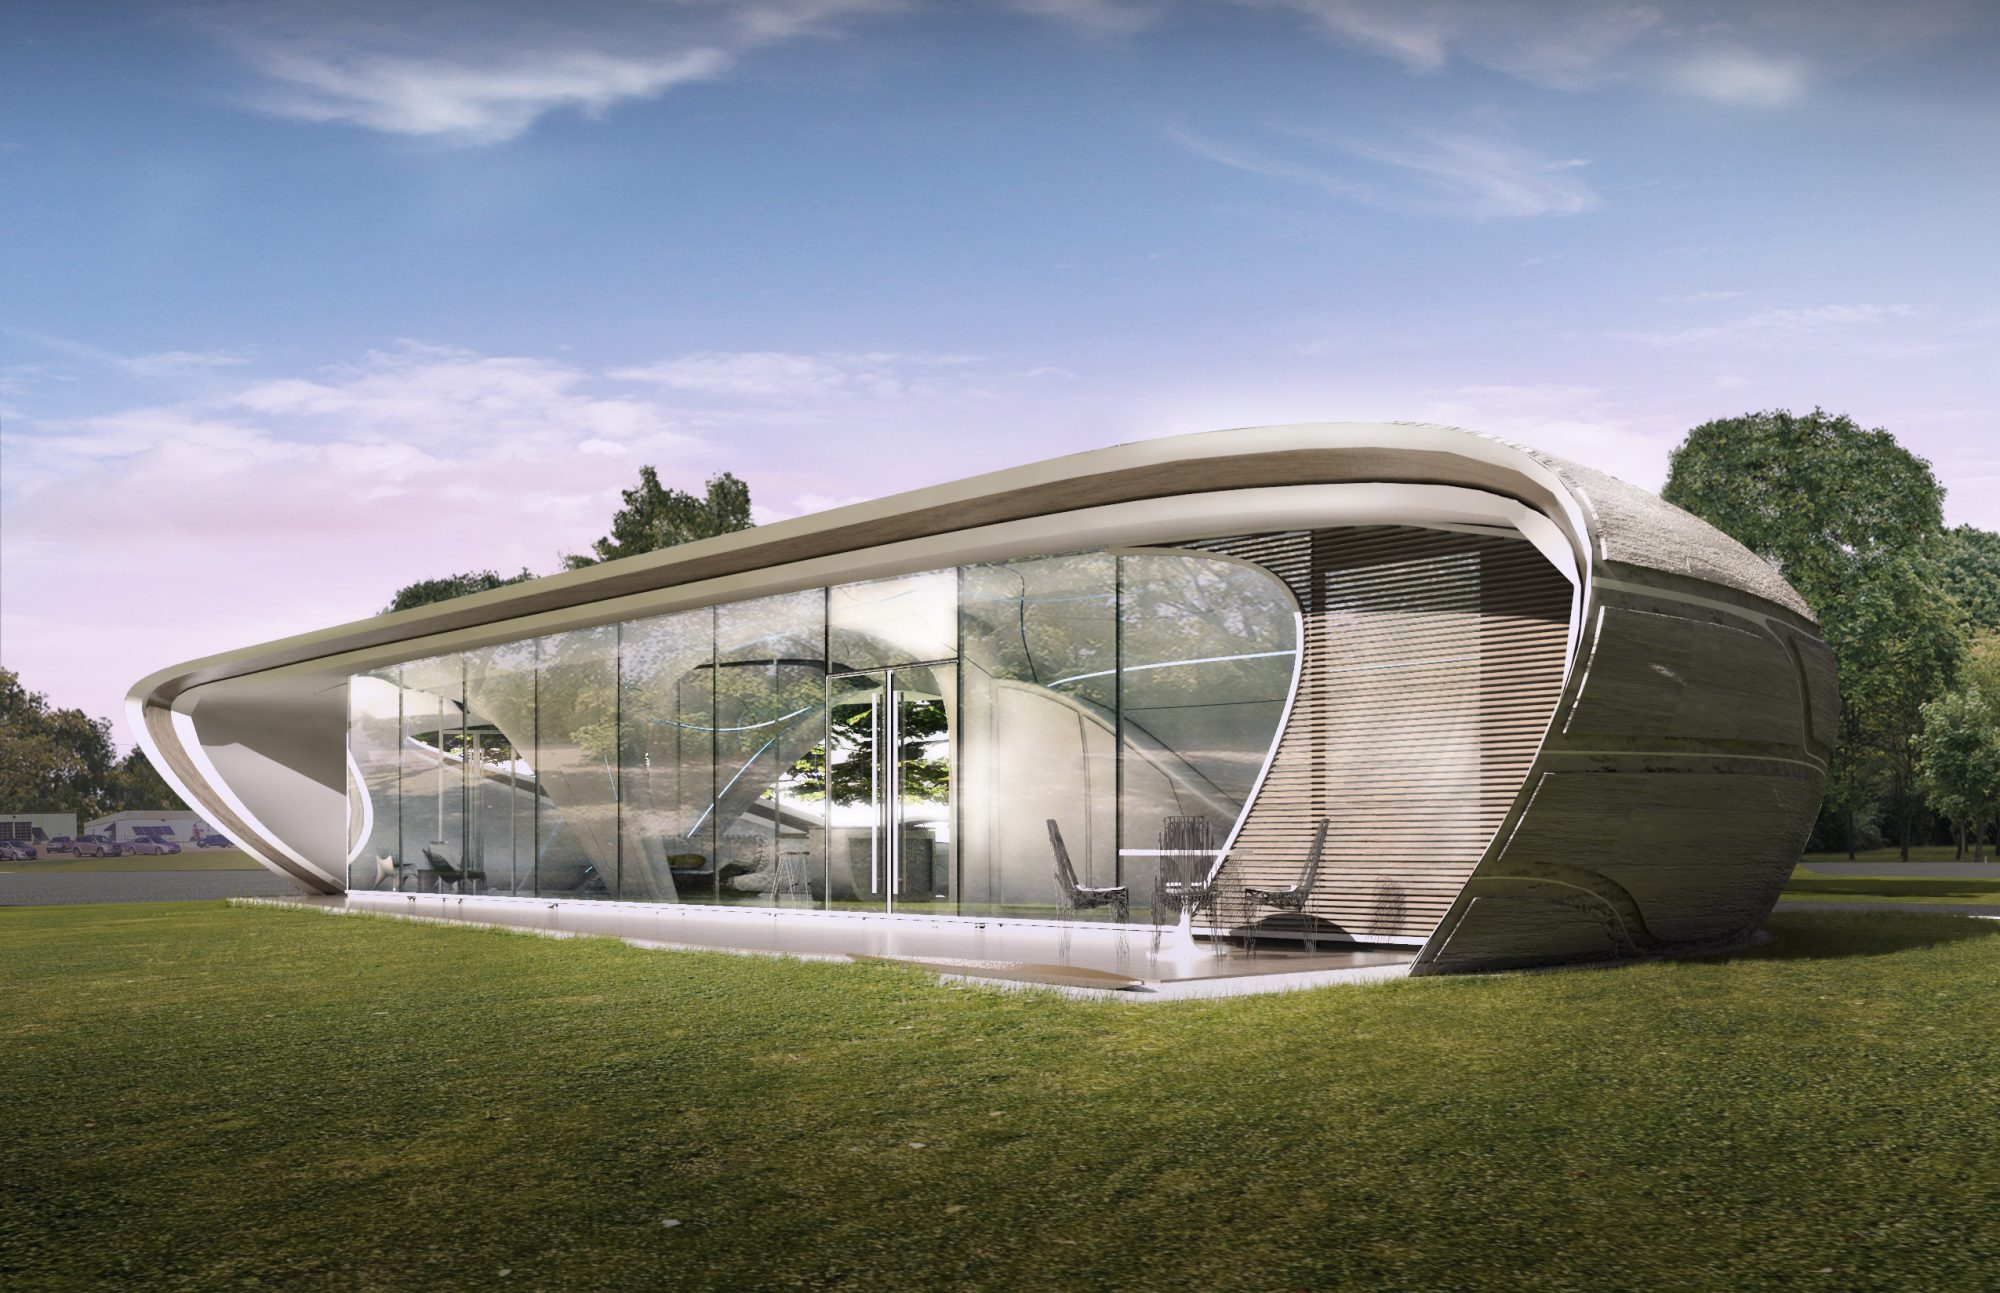 Reinventing the home Designing the worlds first freeform 3D